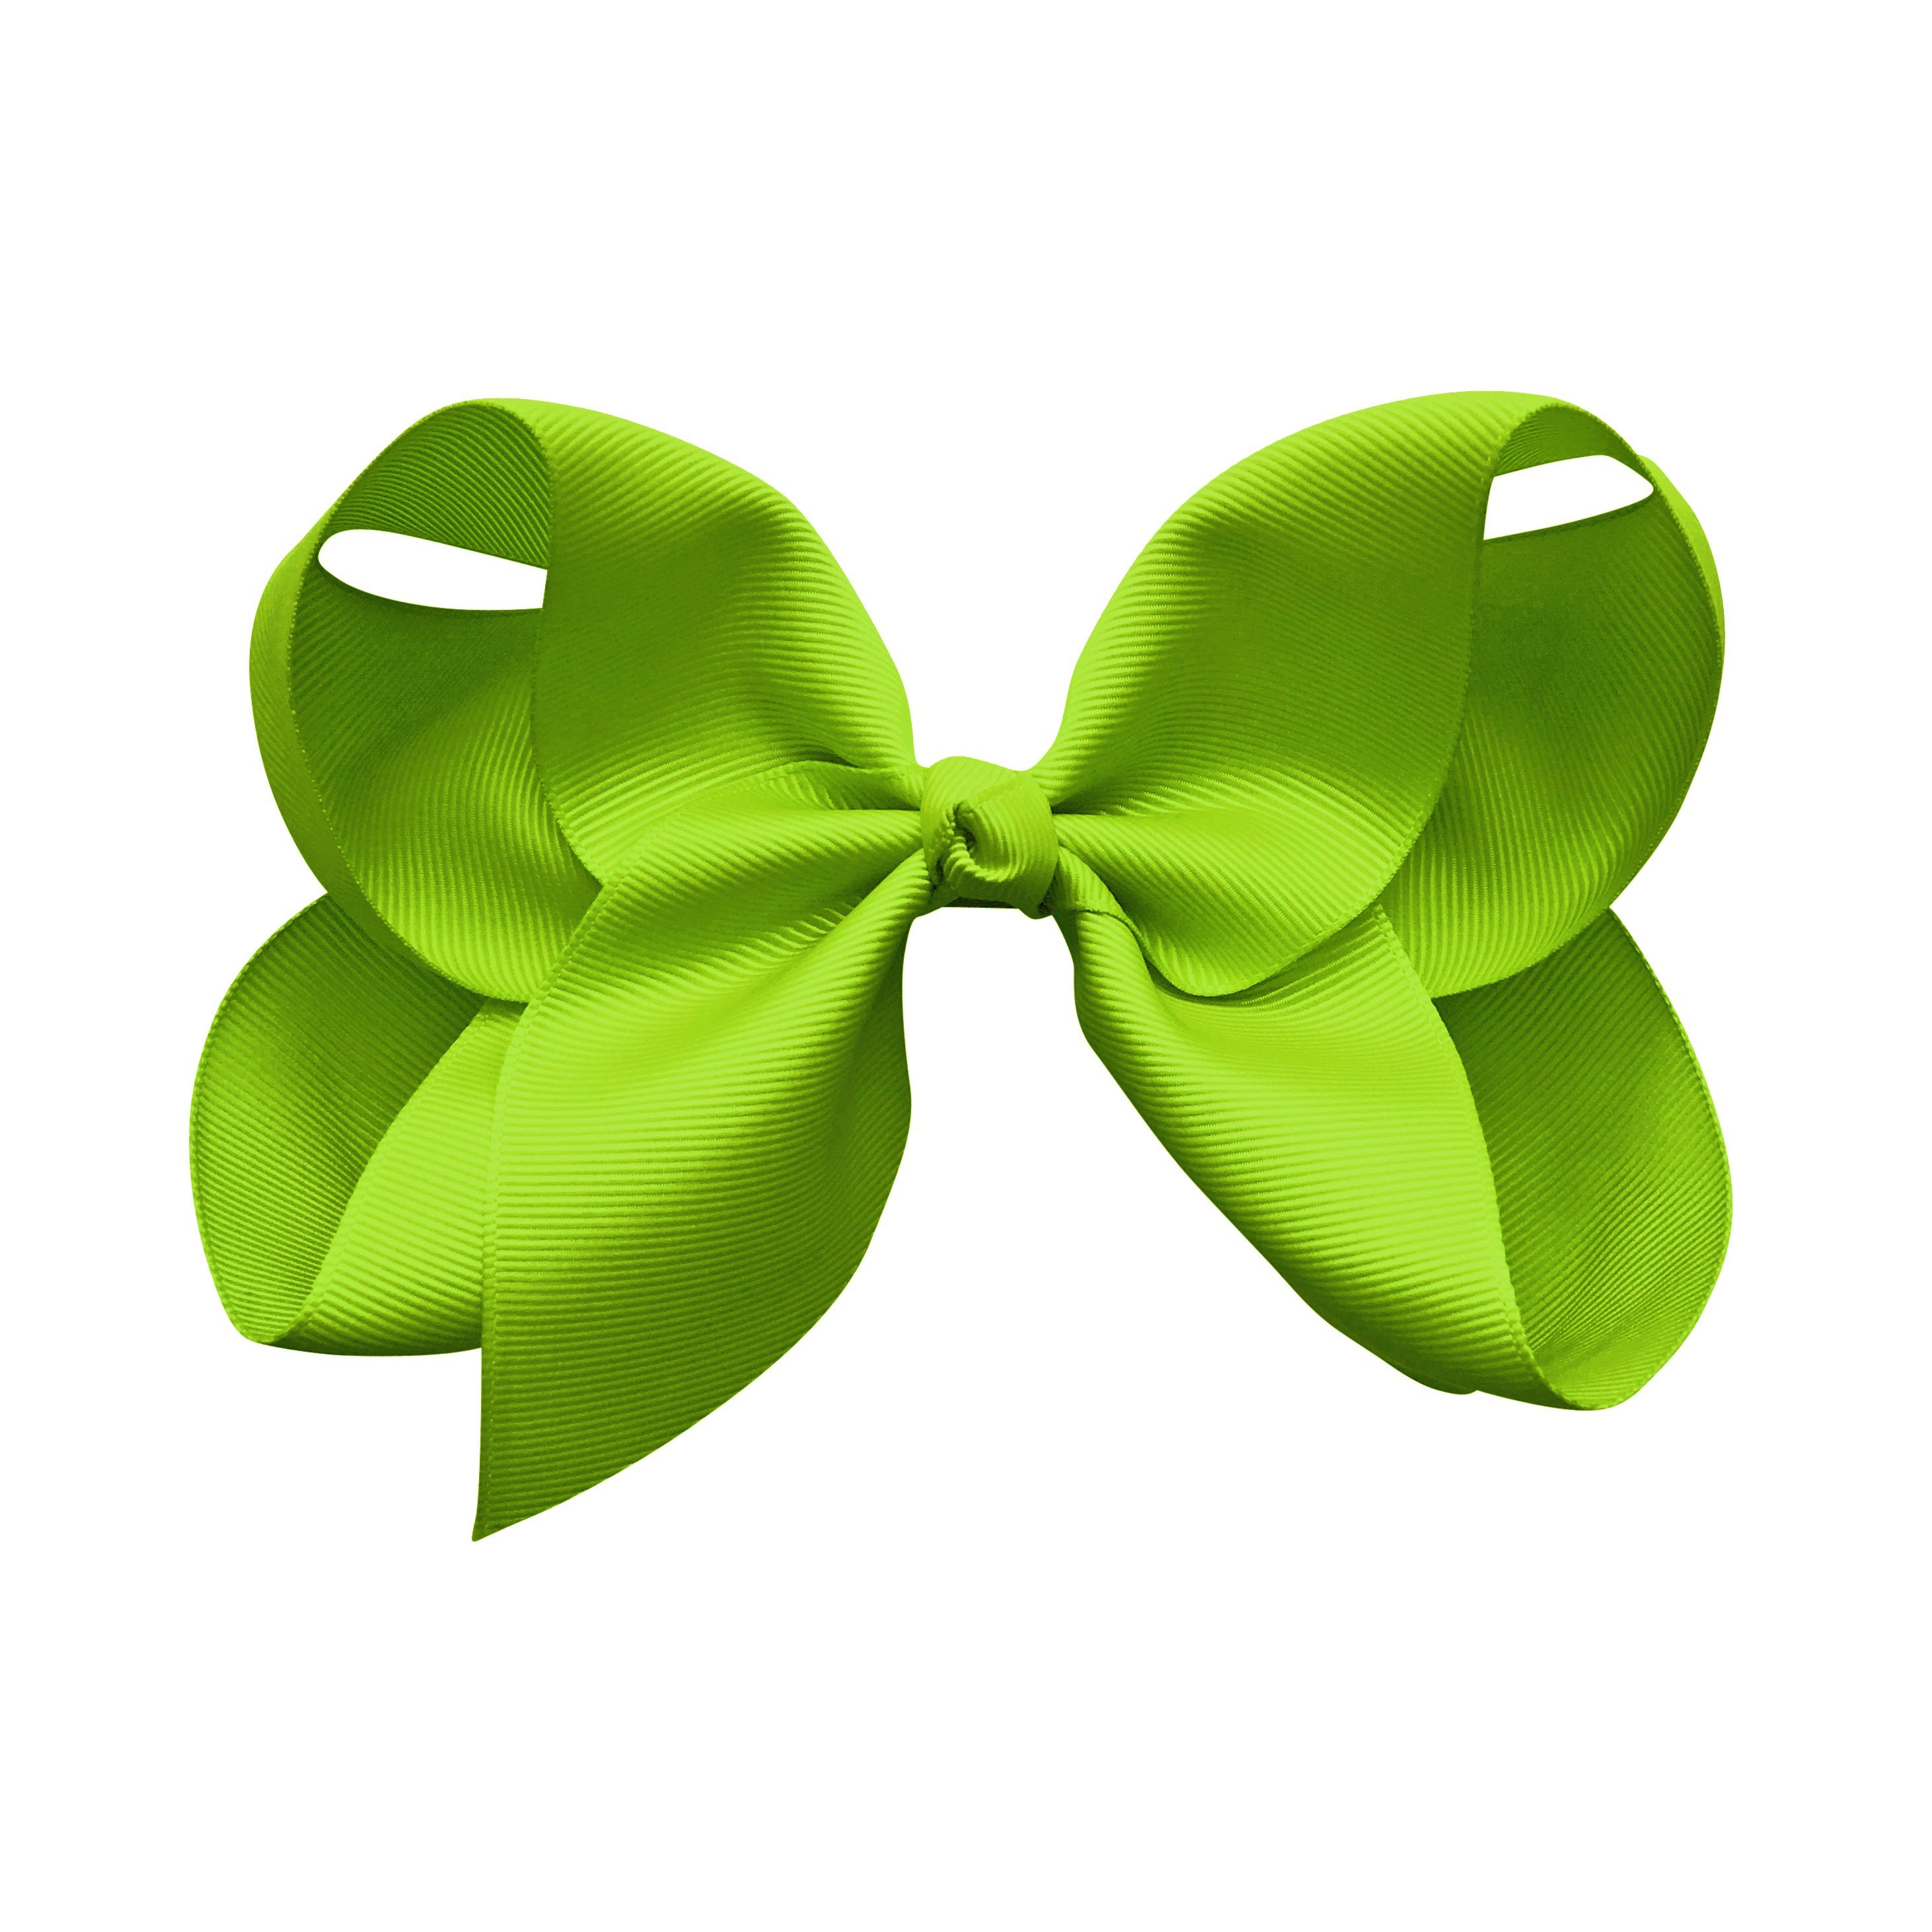 Image of Jumbo Boutique Bow - alligator clip - apple green